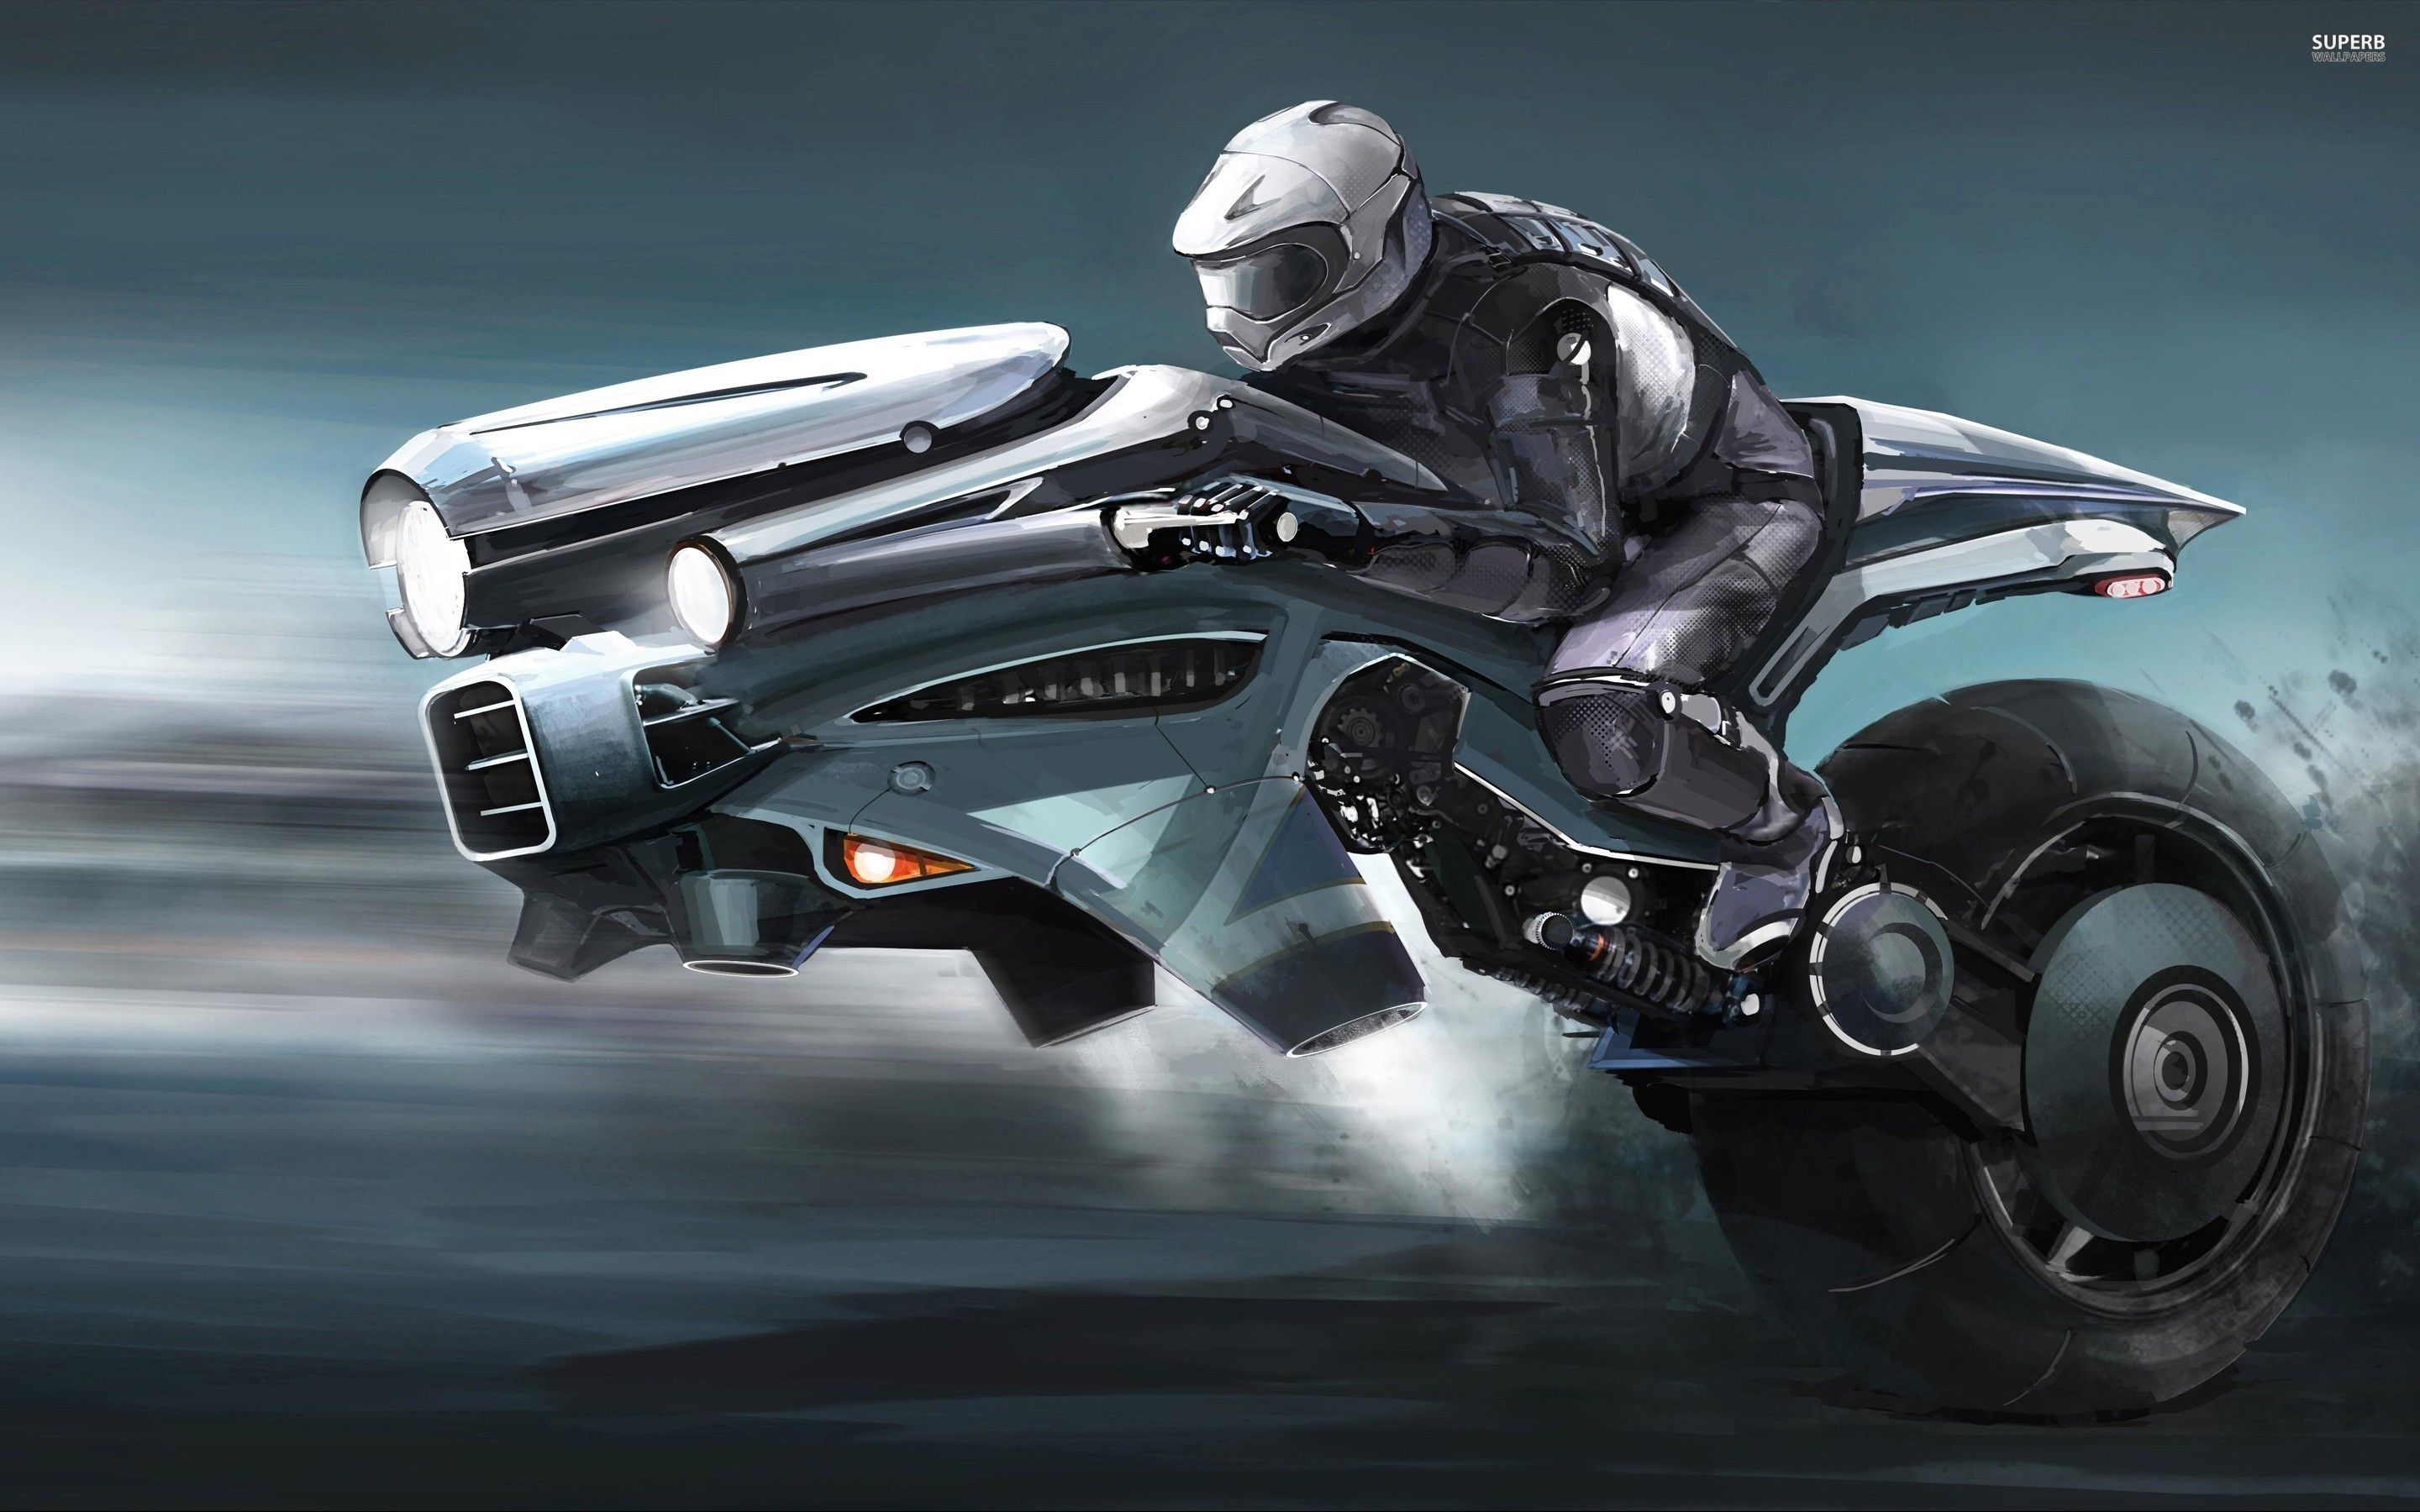 Futuristic Motorcycle Wallpapers - Top Free Futuristic Motorcycle ...